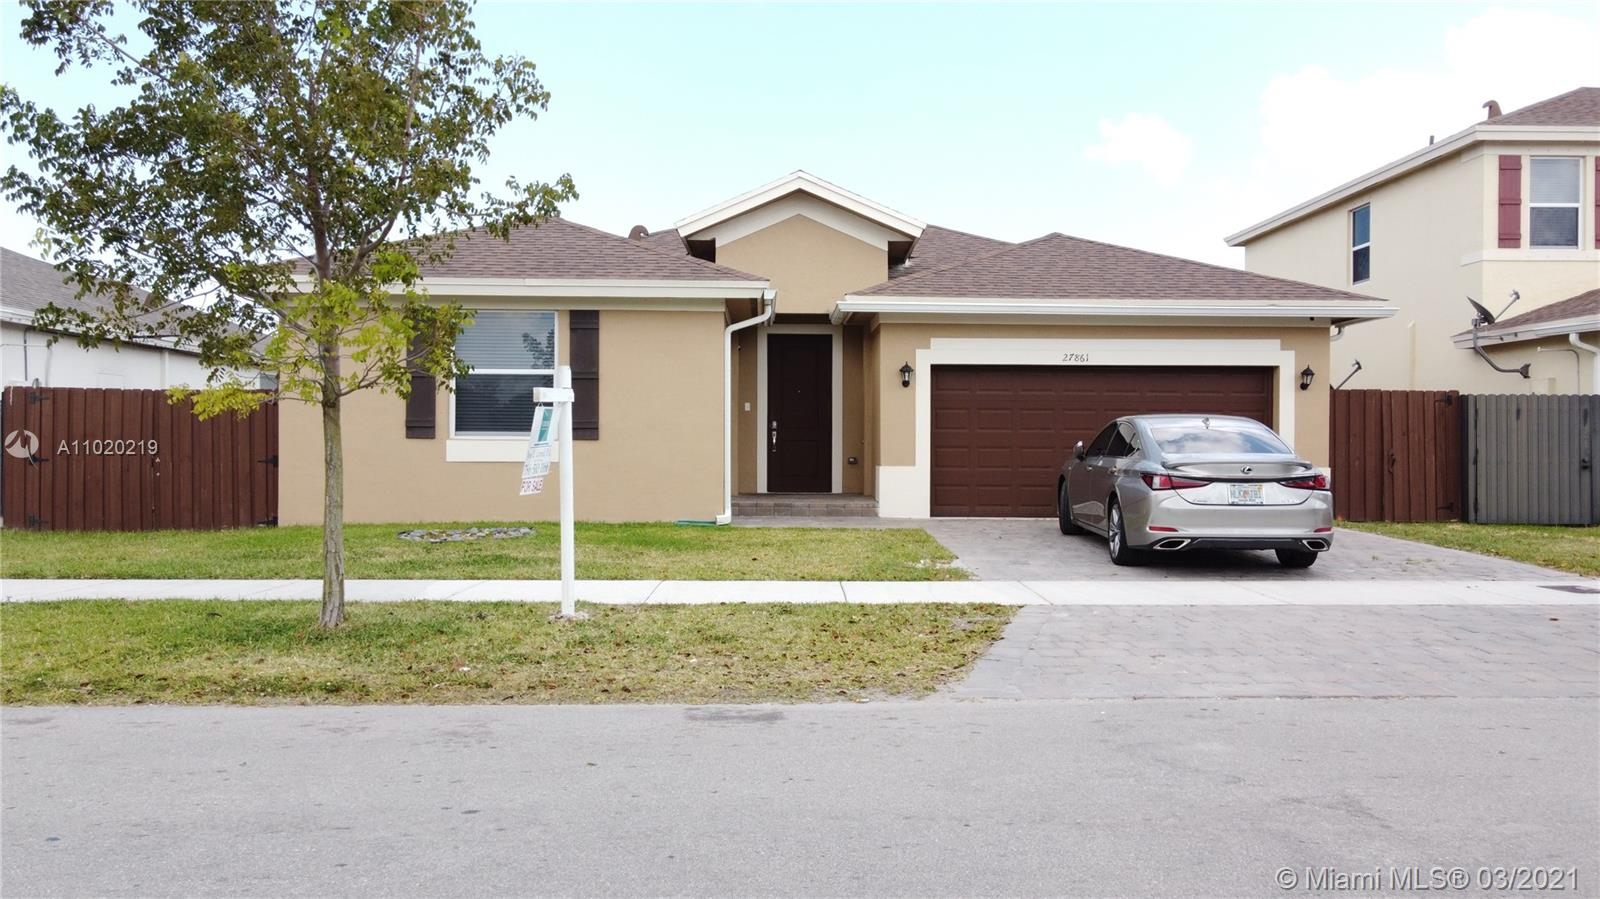 27861 SW 134th Ct Property Photo - Homestead, FL real estate listing